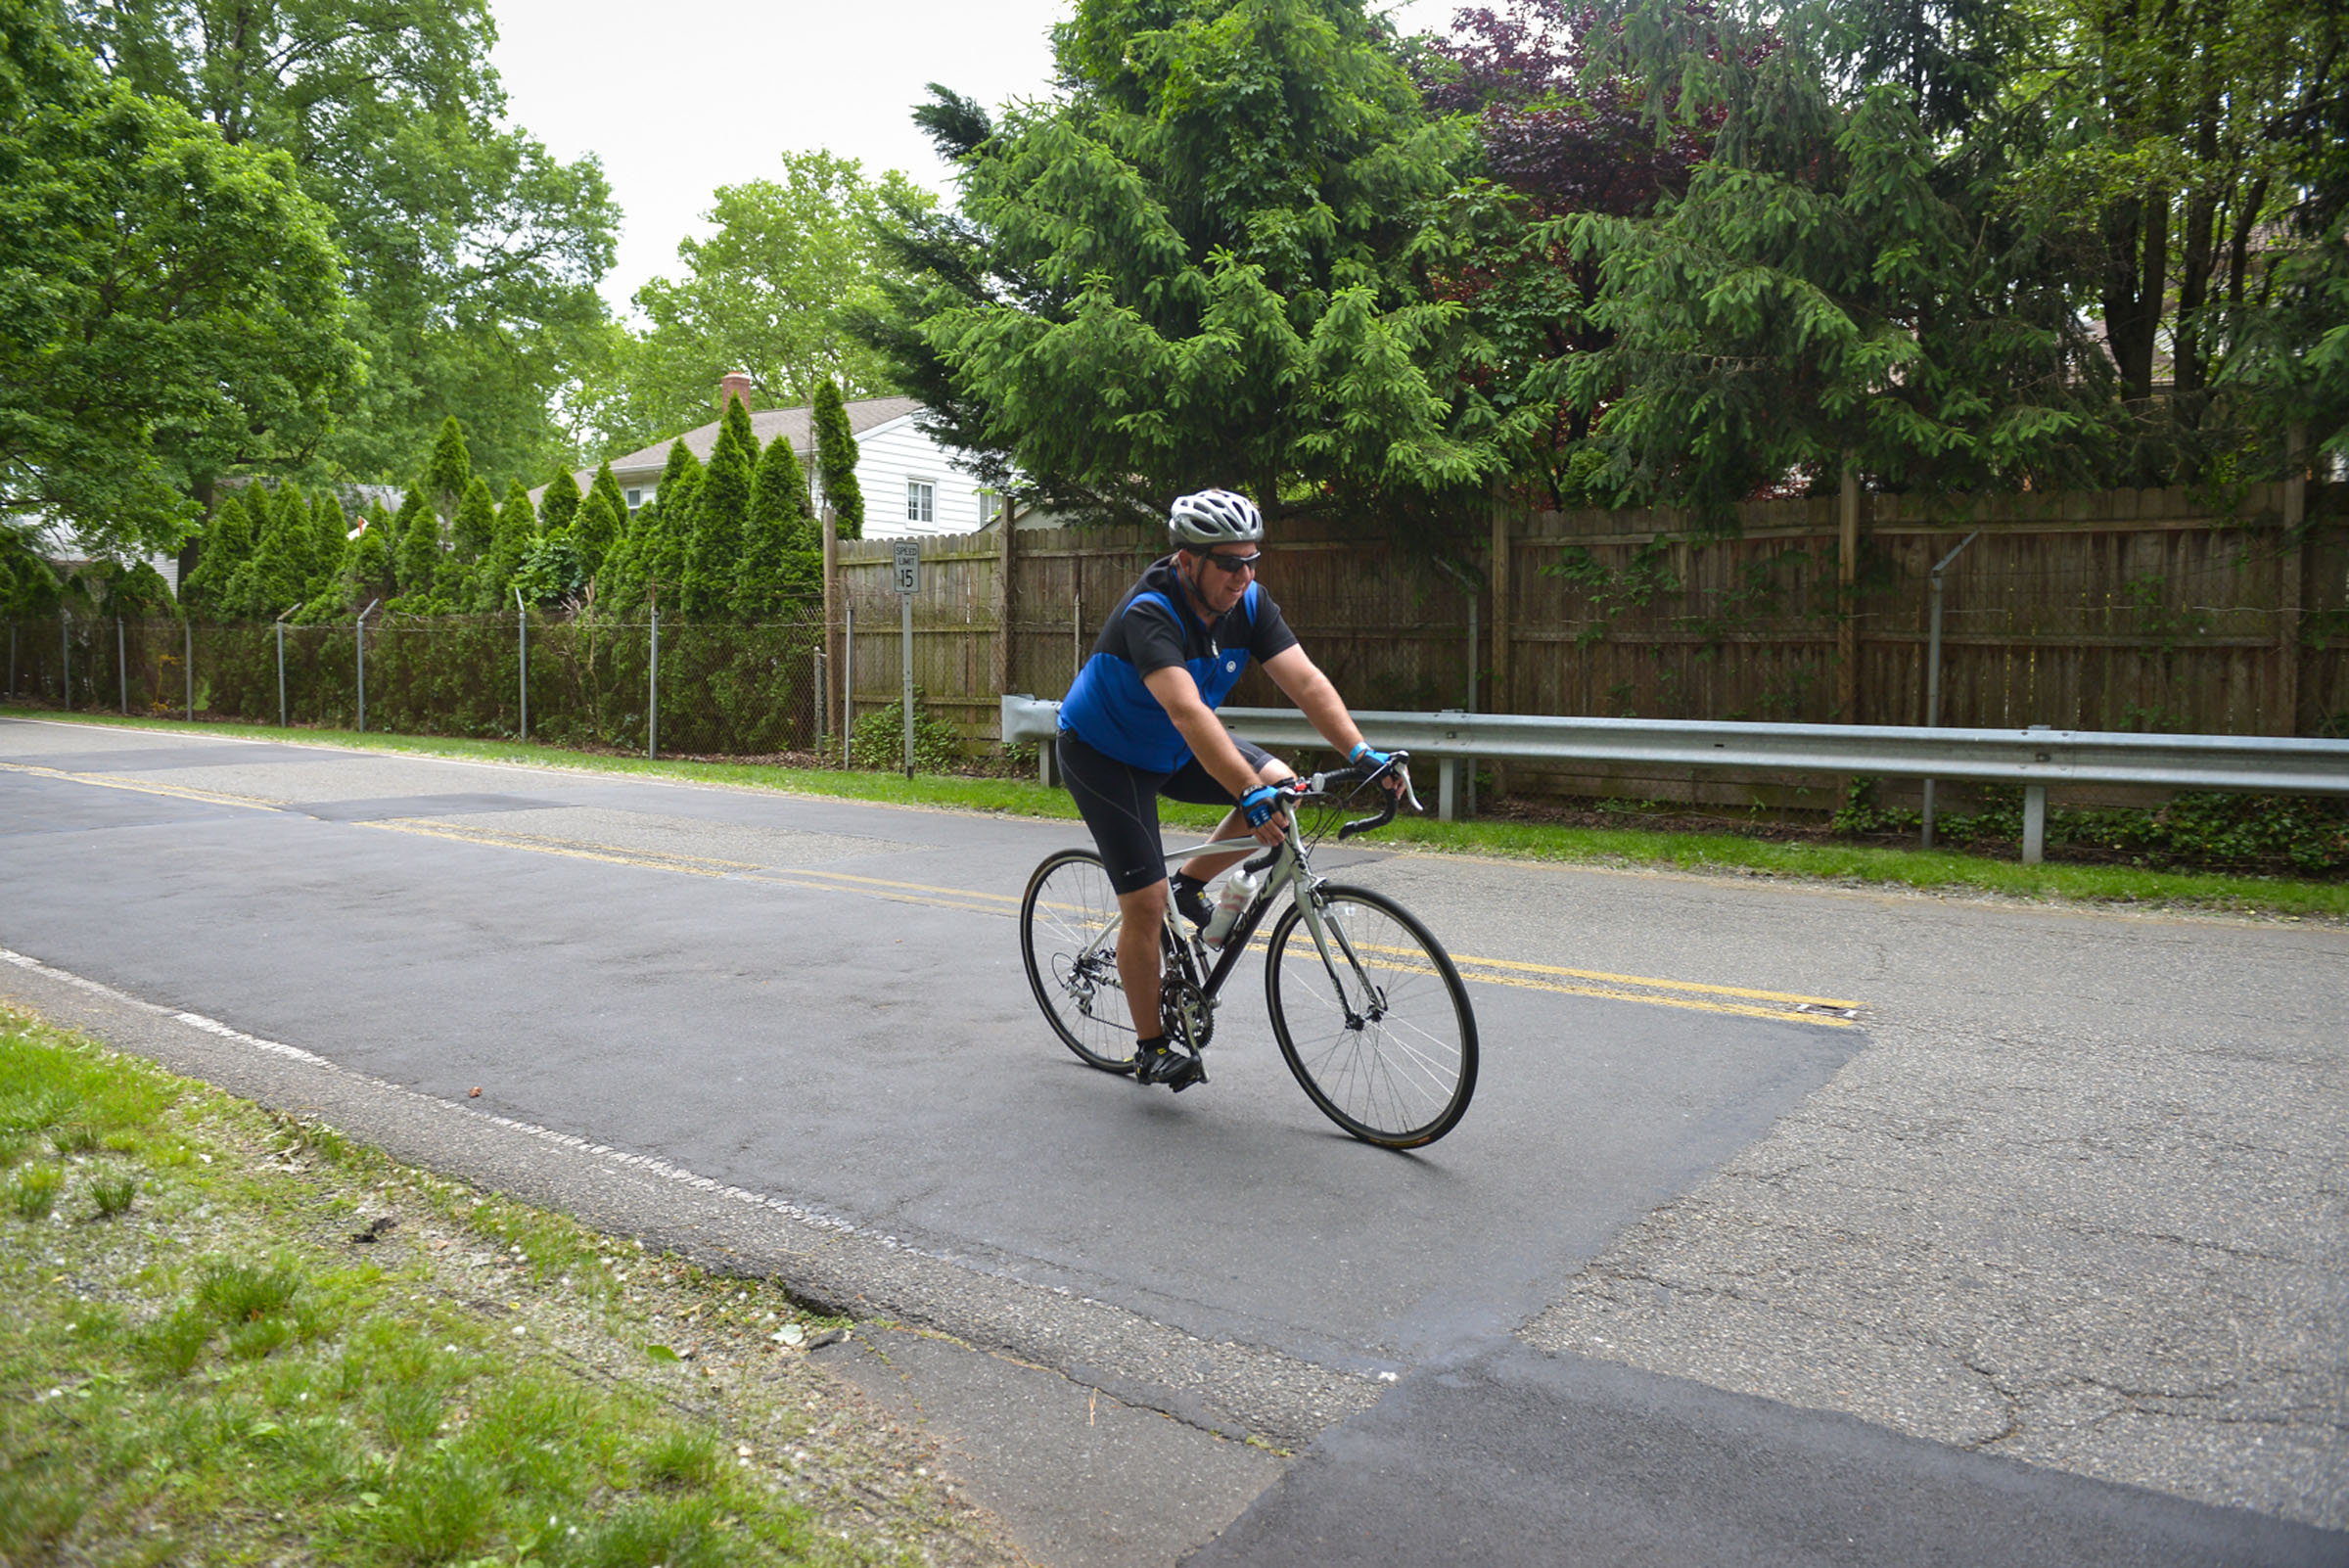 2017-06-04 GTD4A Charity Bike Ride - BCC - Paramus NJ-2343.jpg